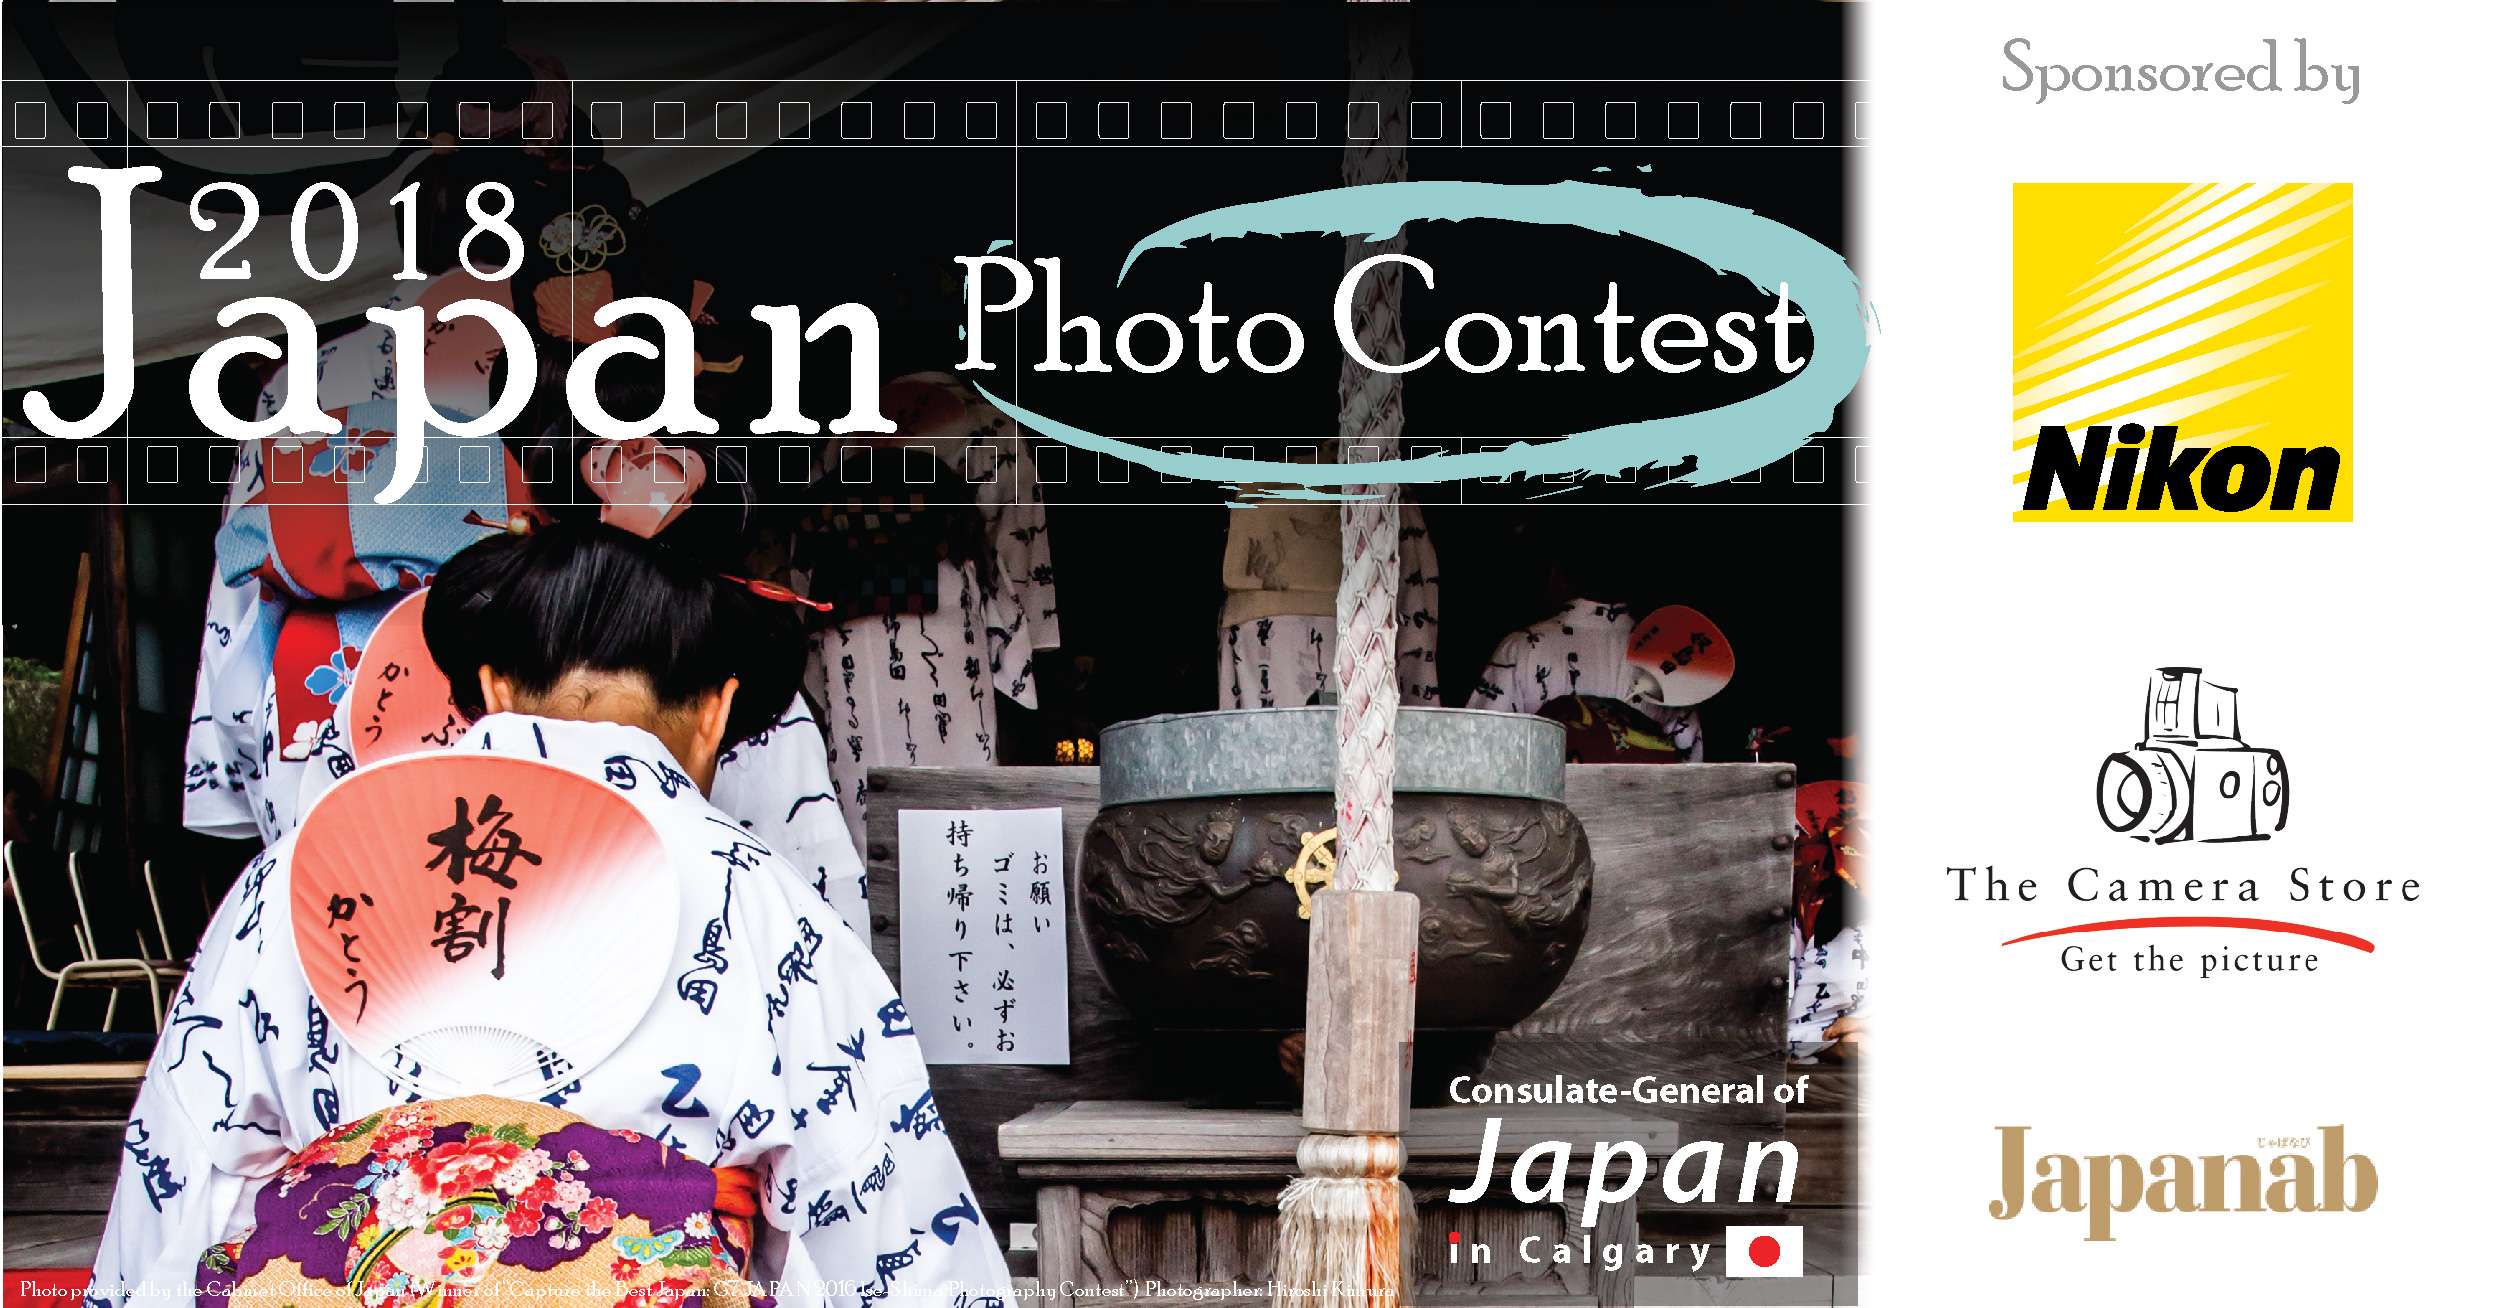 2018 Japan Photo Contest - logo